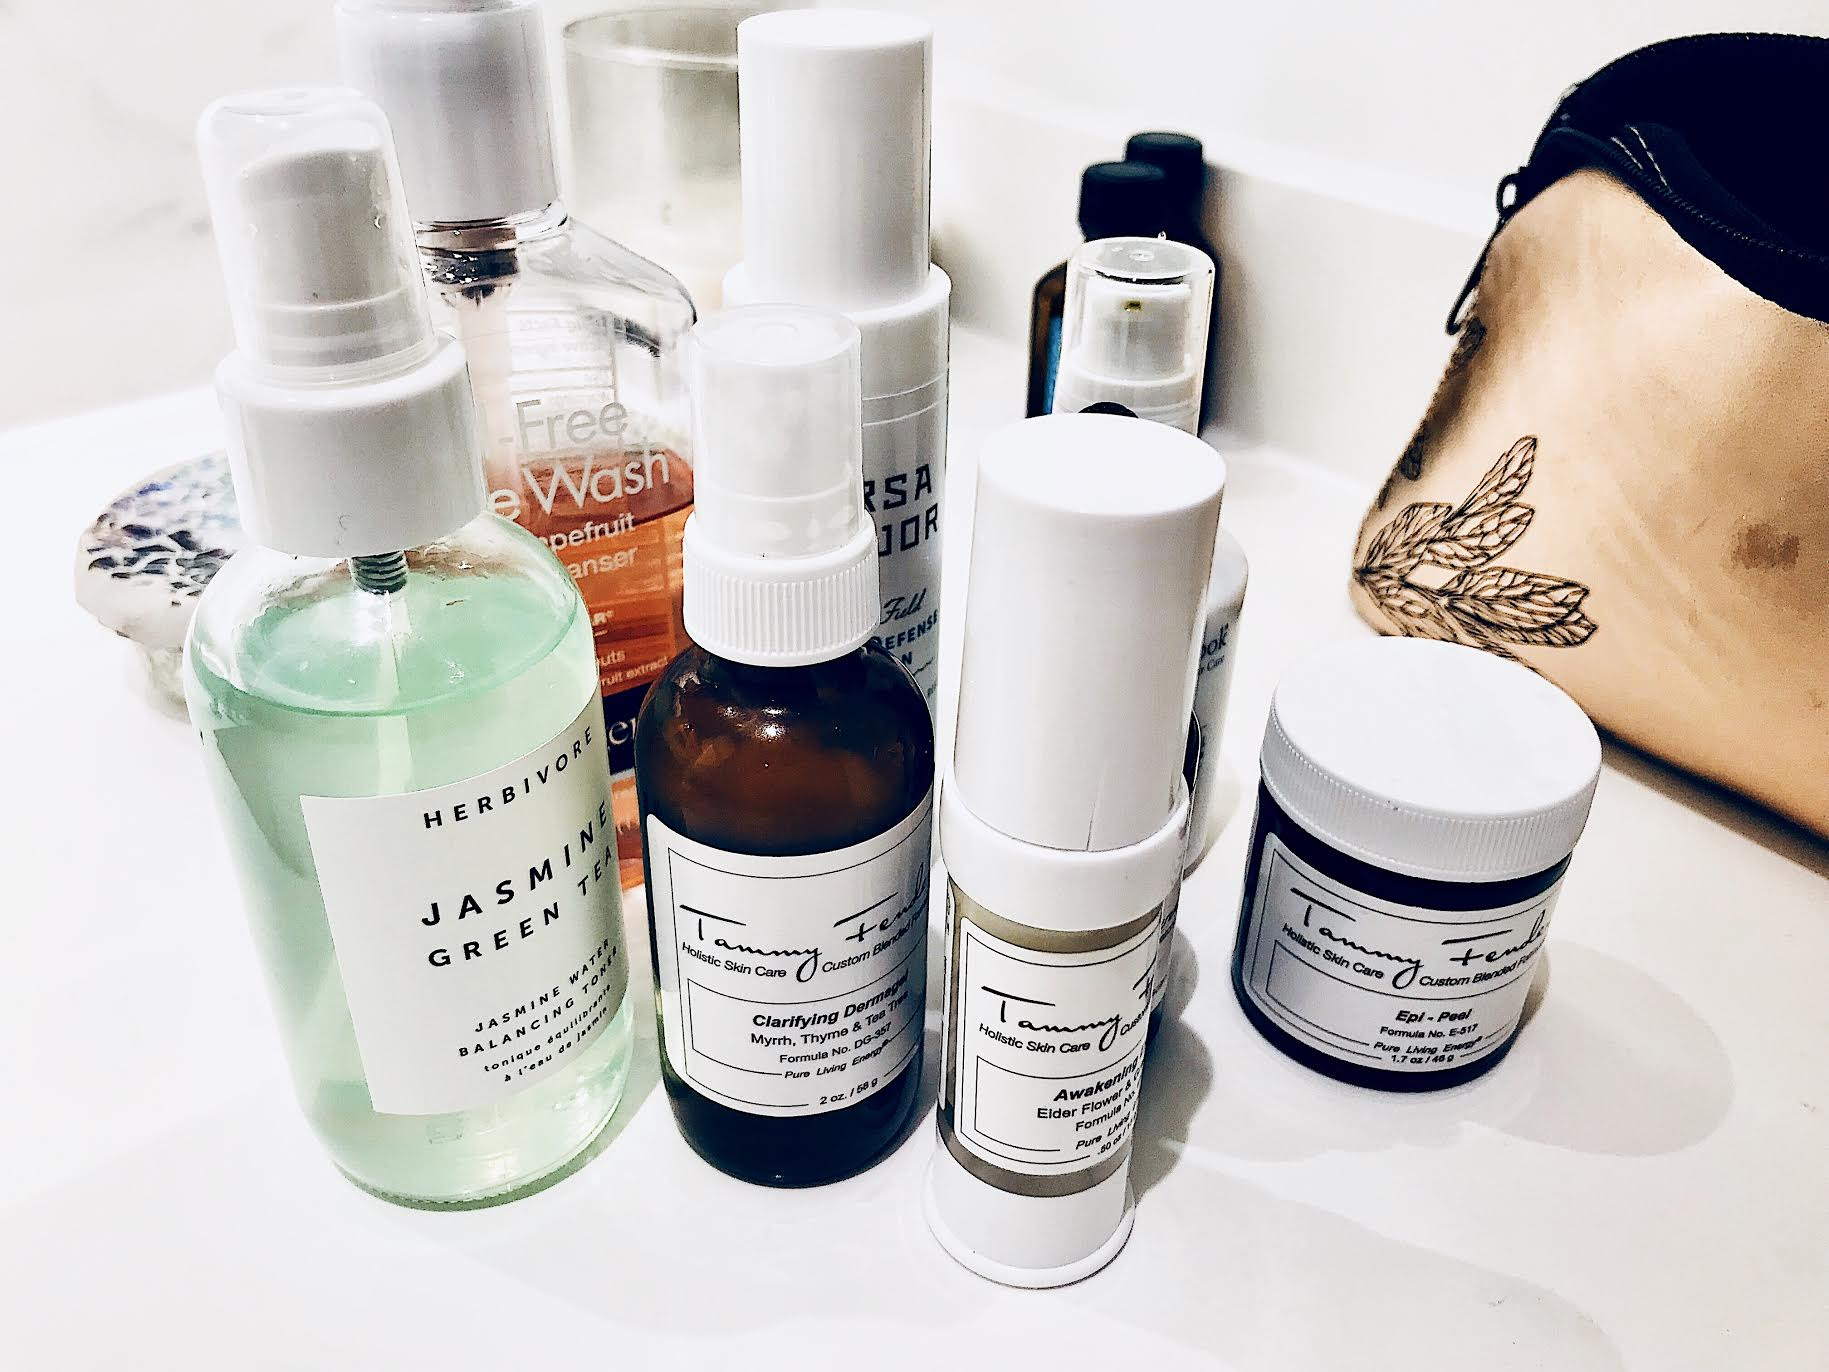 #SkinBabe Giuliana Cortese shares some of her favorite products with us!